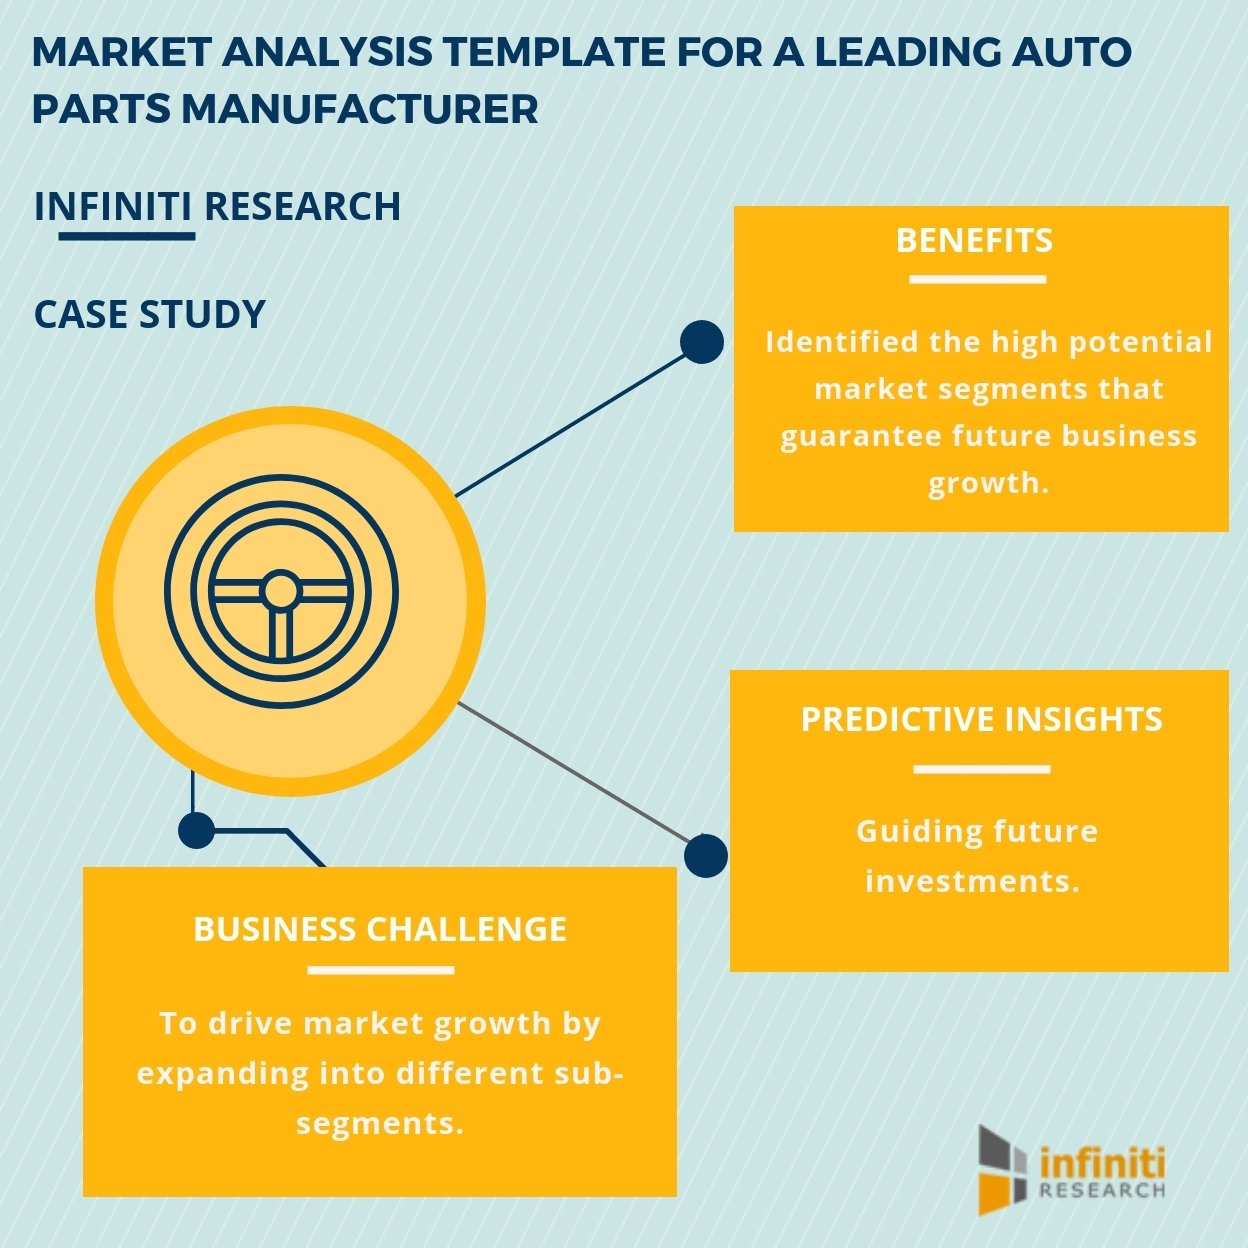 Evaluating Investment Potential In New Markets With The Help Of